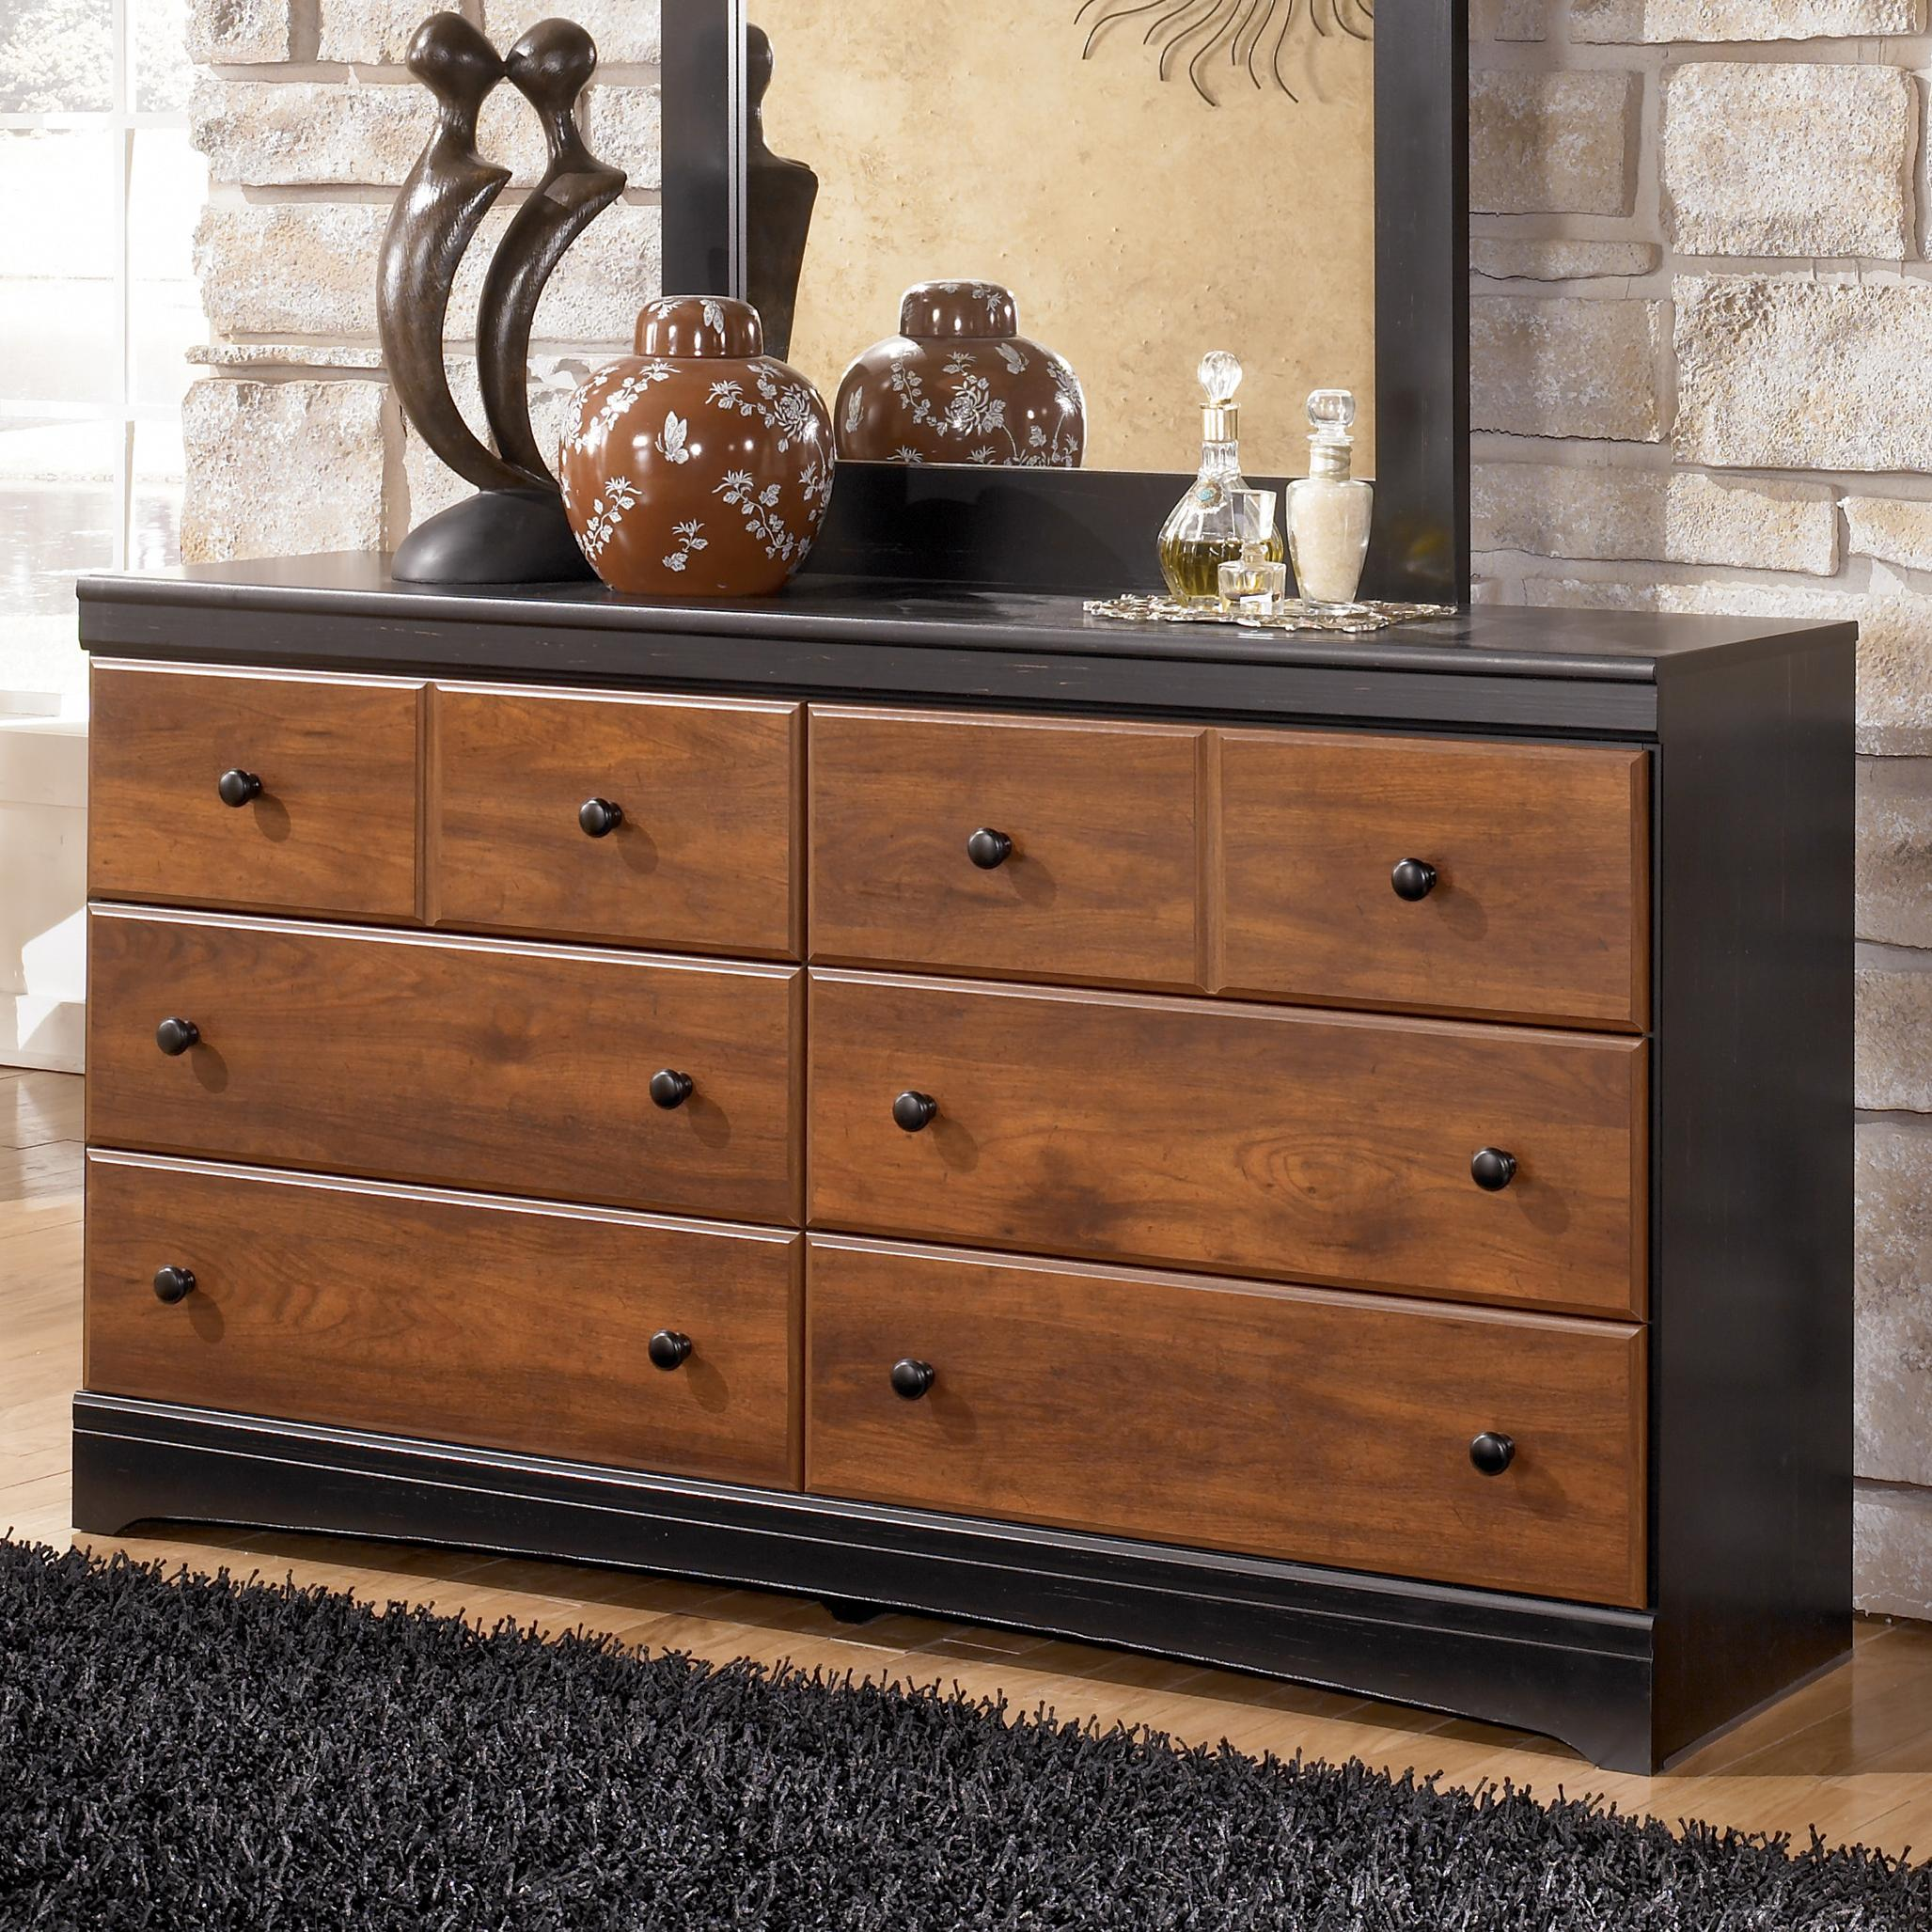 with bedroom dressers image mirror ideas ashley of online dresser furniture